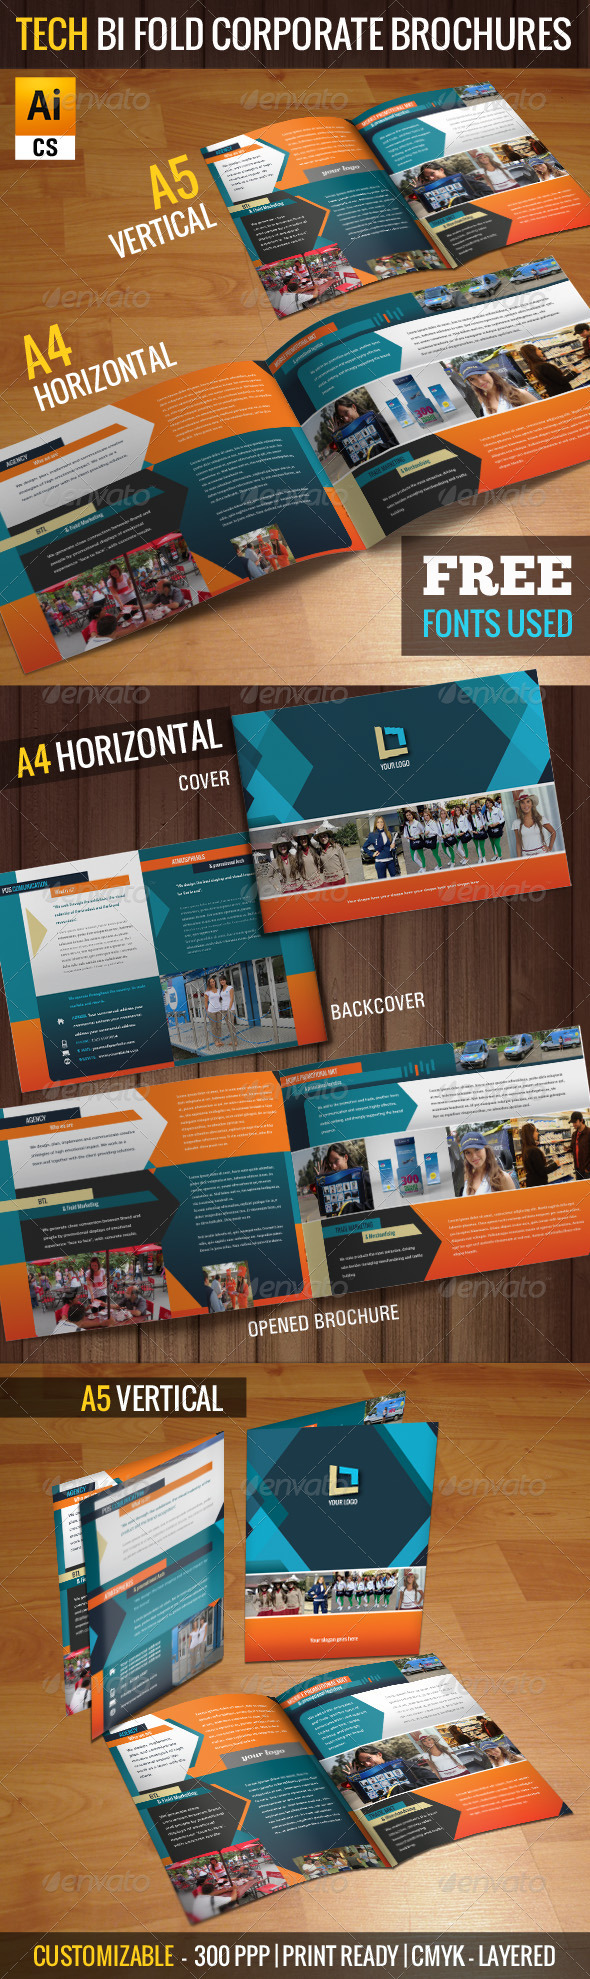 Tech Bi-fold Corporate Brochures